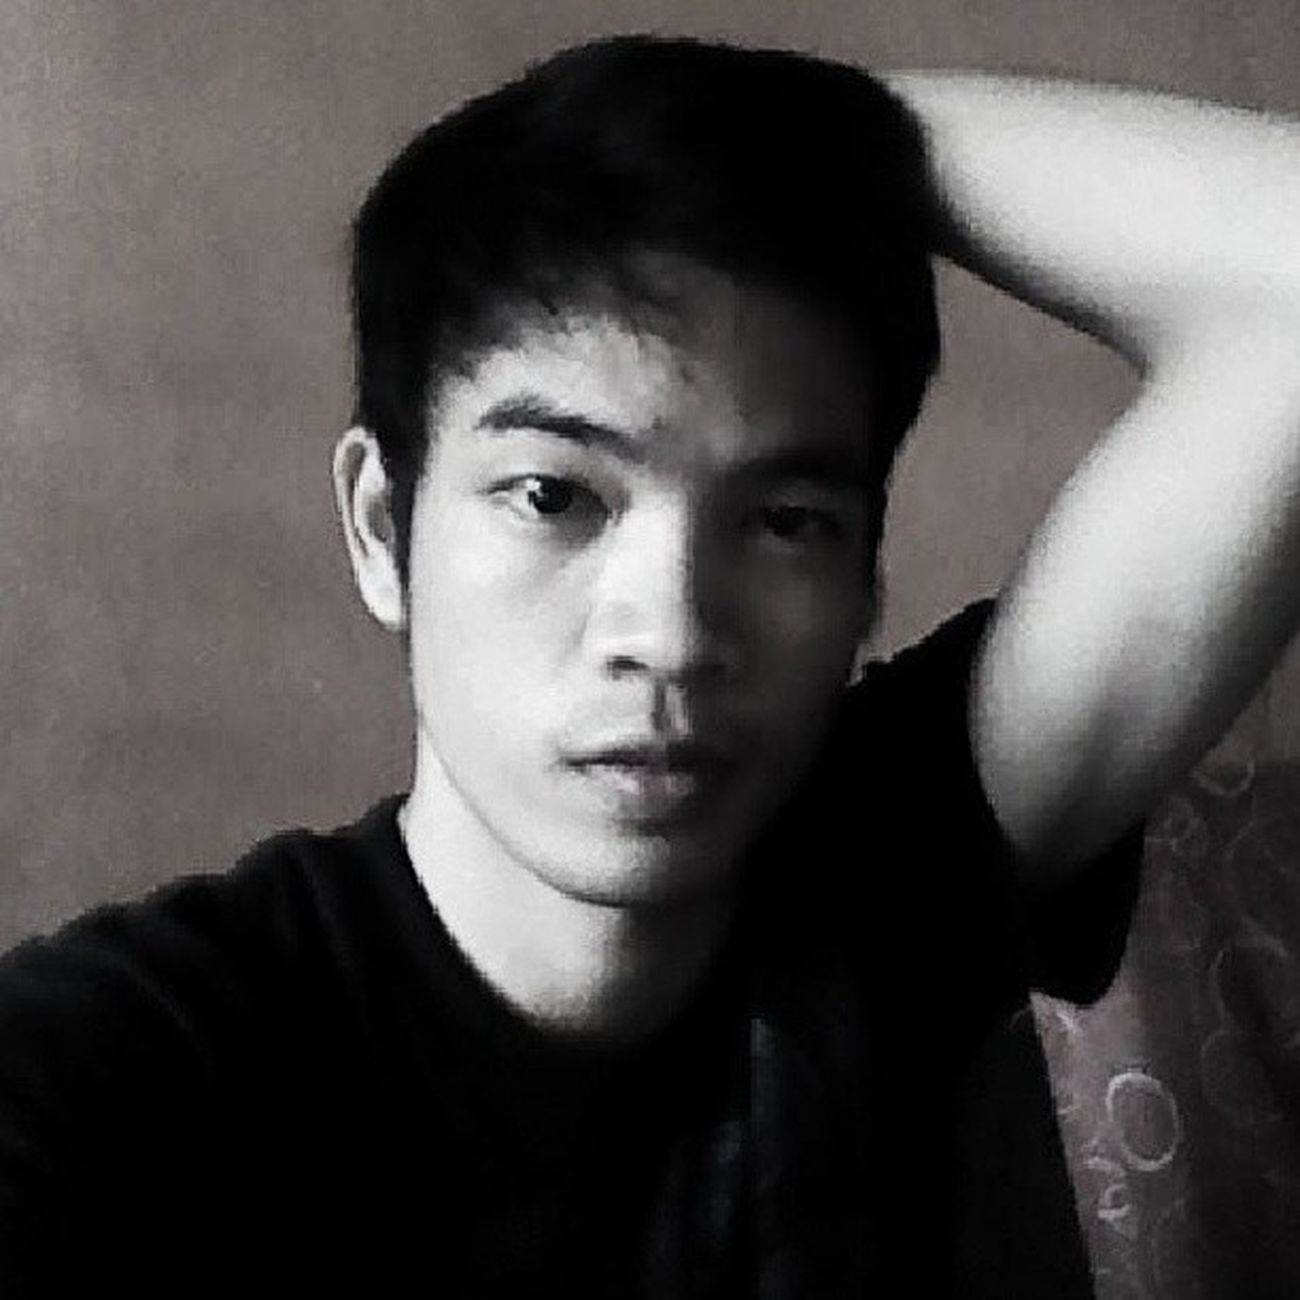 AnotherSexyPose Selfie Blackandwhite